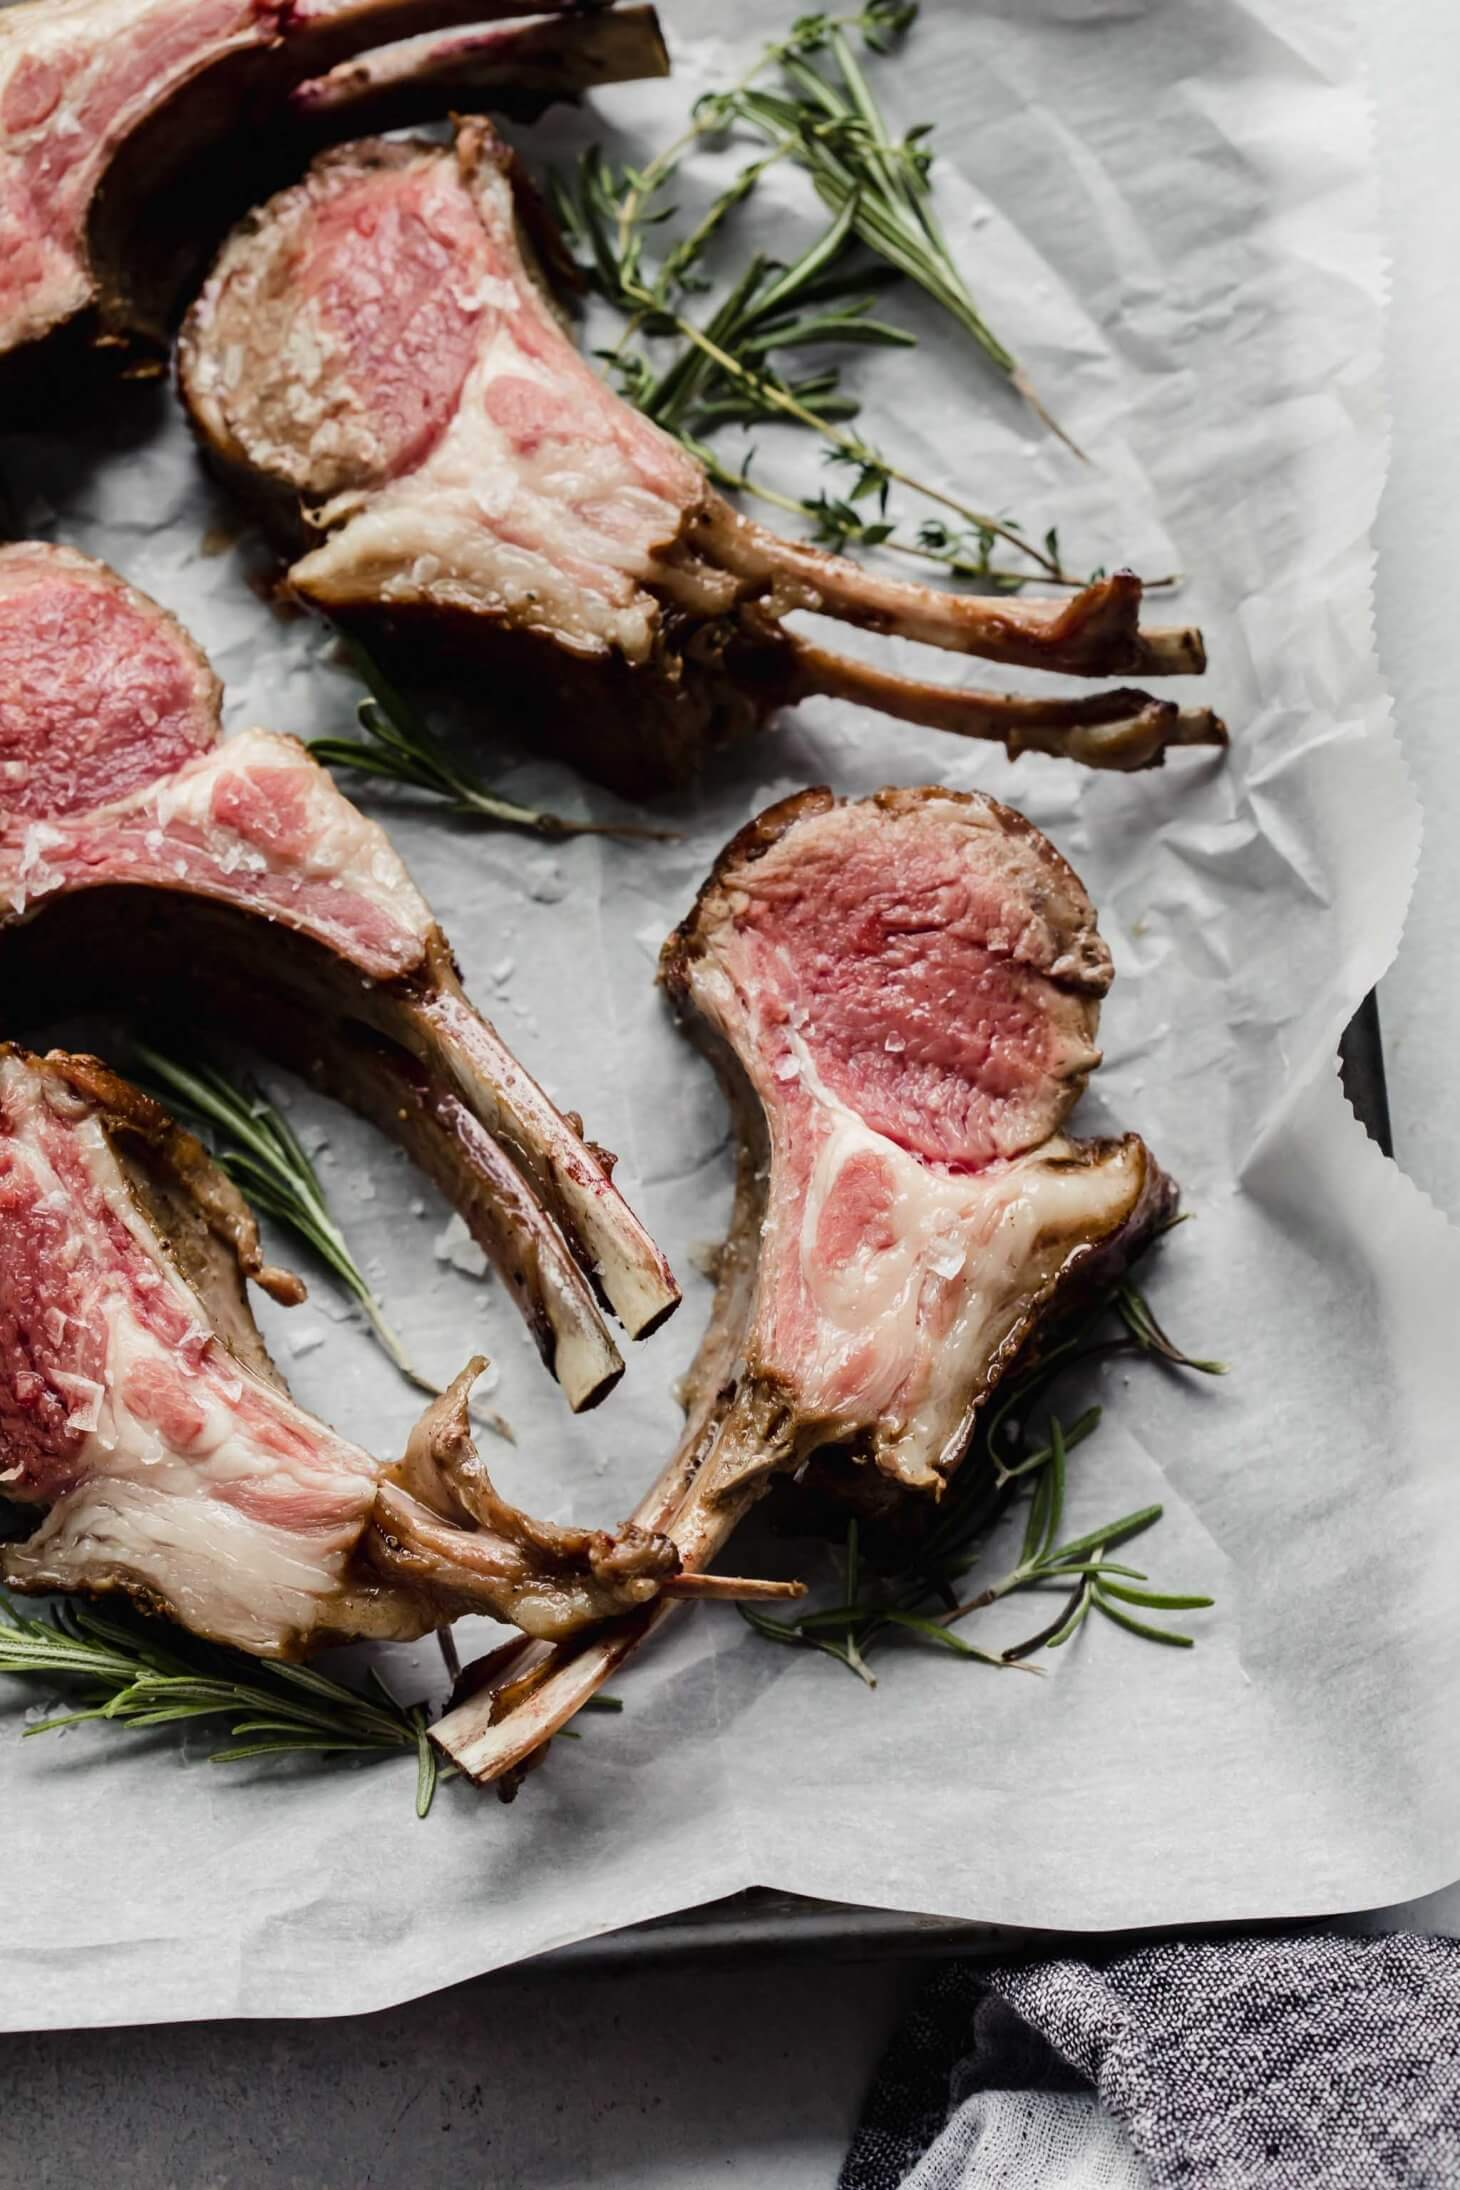 Rack of lamb sliced into chops and laid out on tray next to fresh herbs.